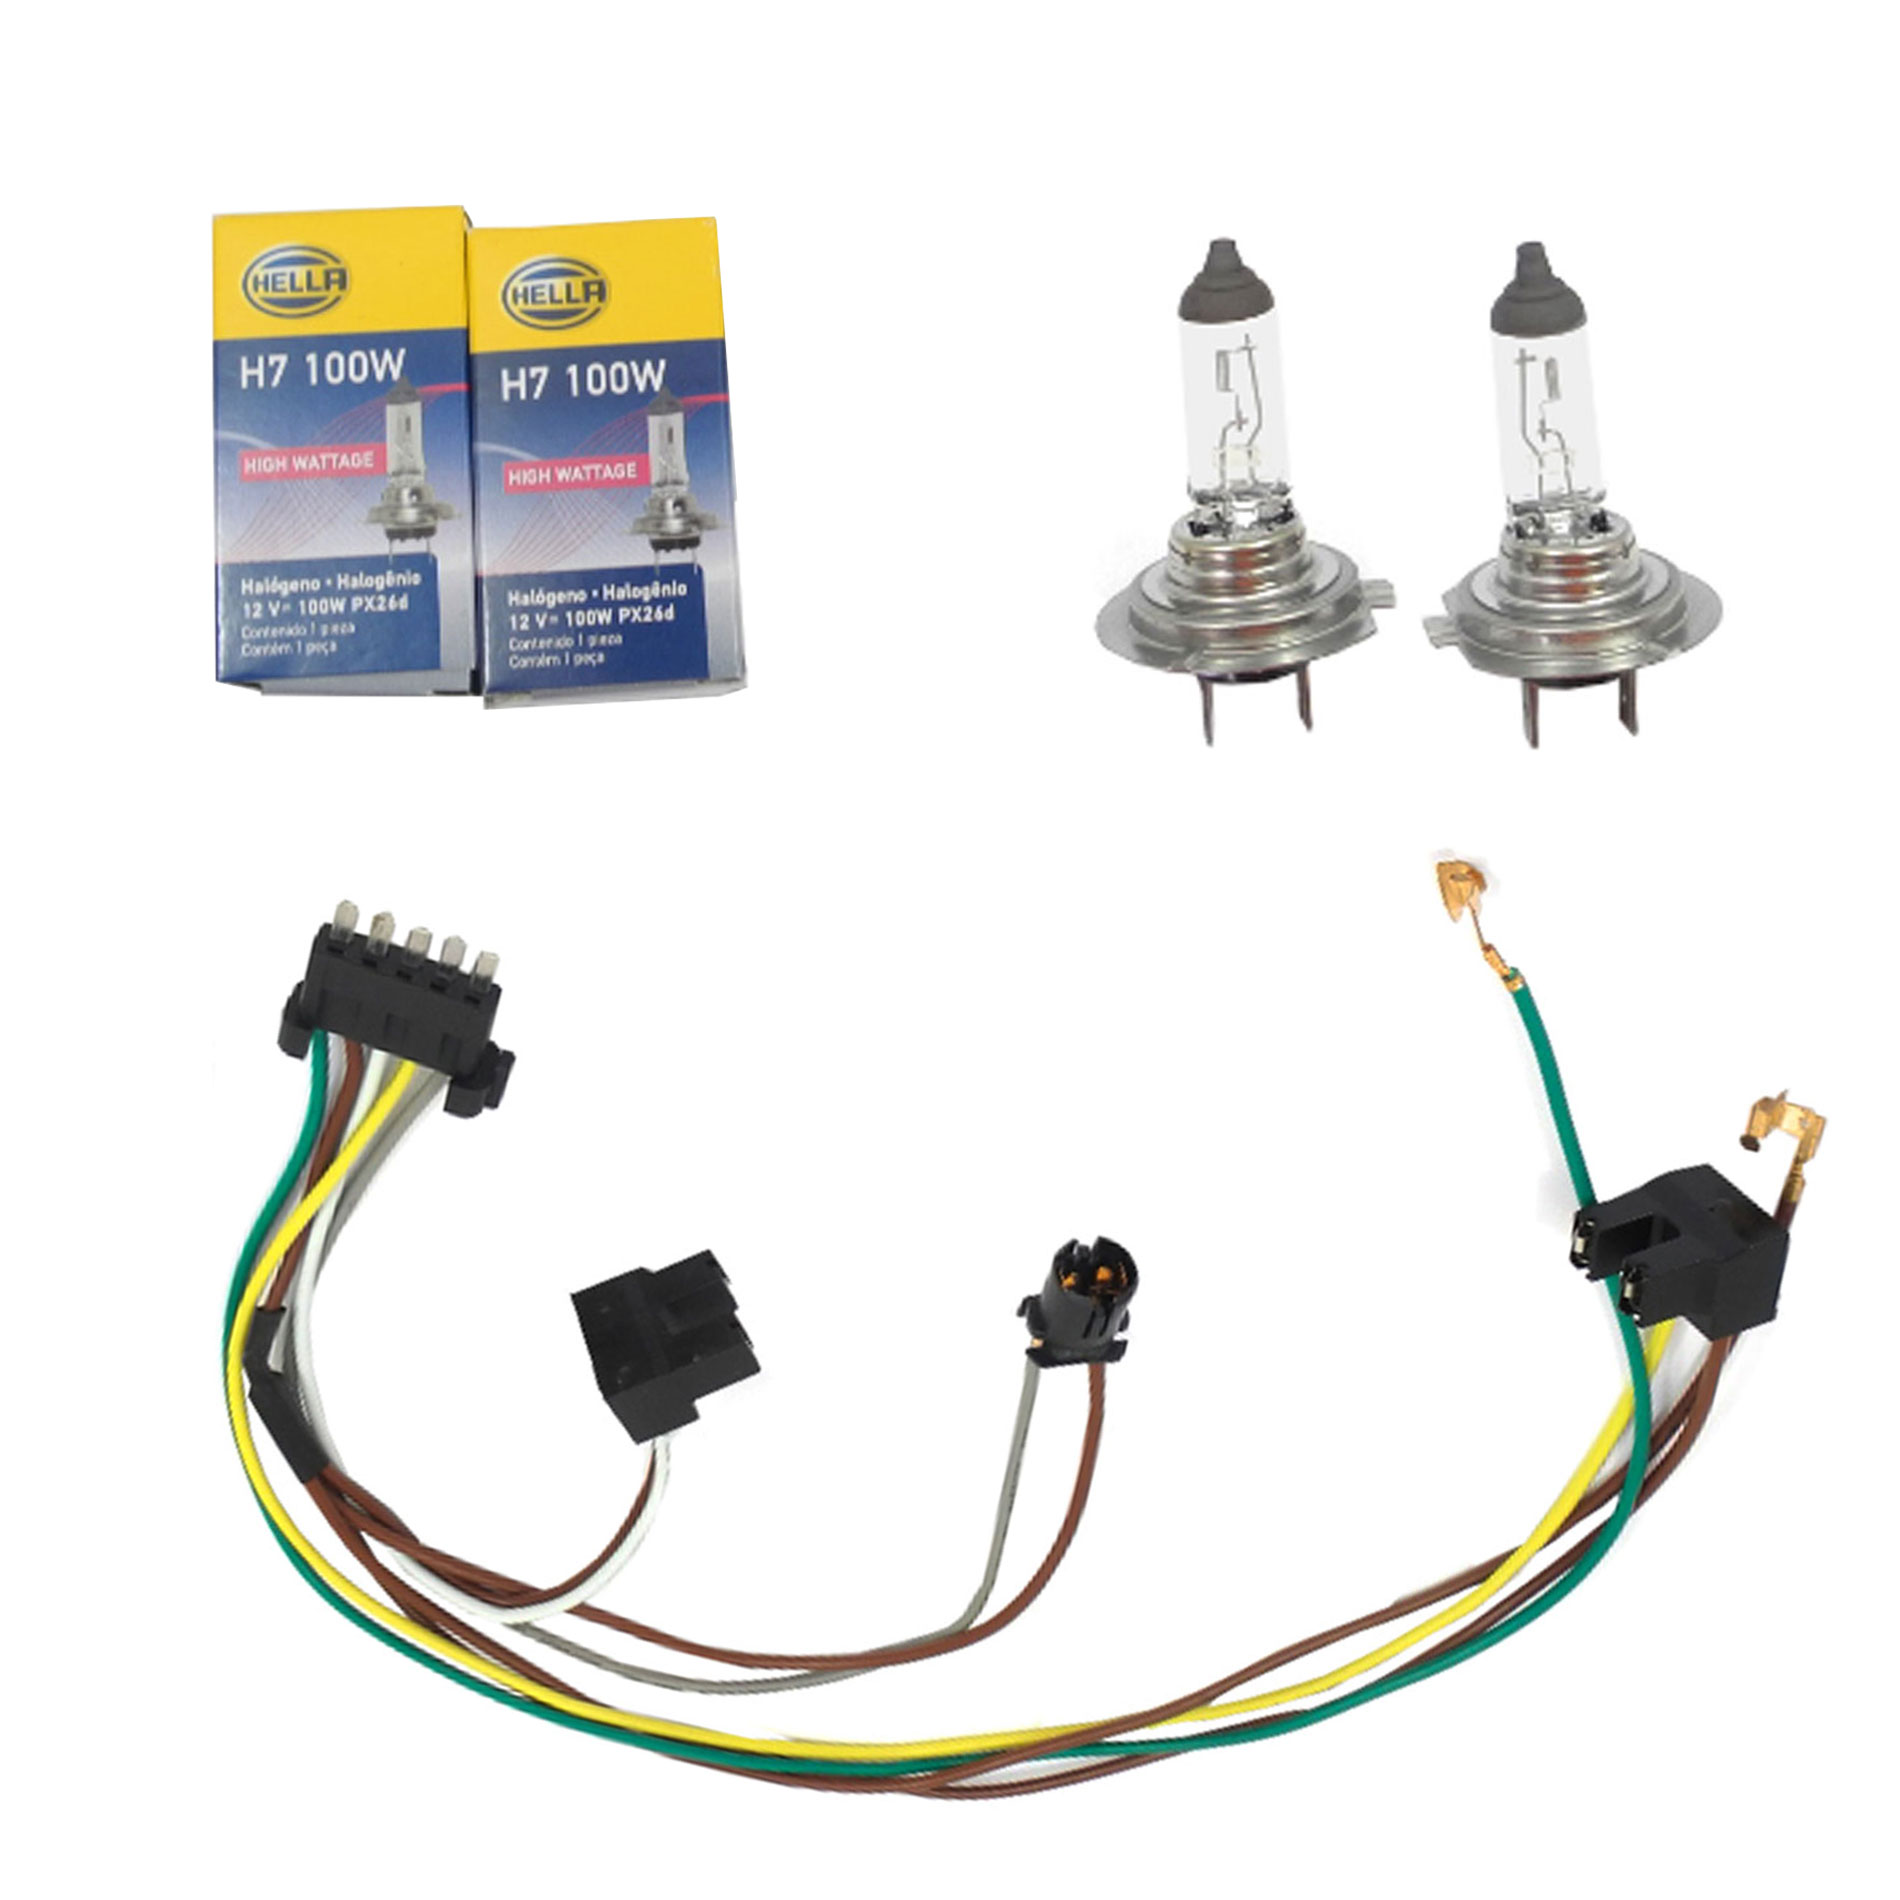 Details about L /R Headlight Wiring Harness & Headlight Bulb H7 100W on